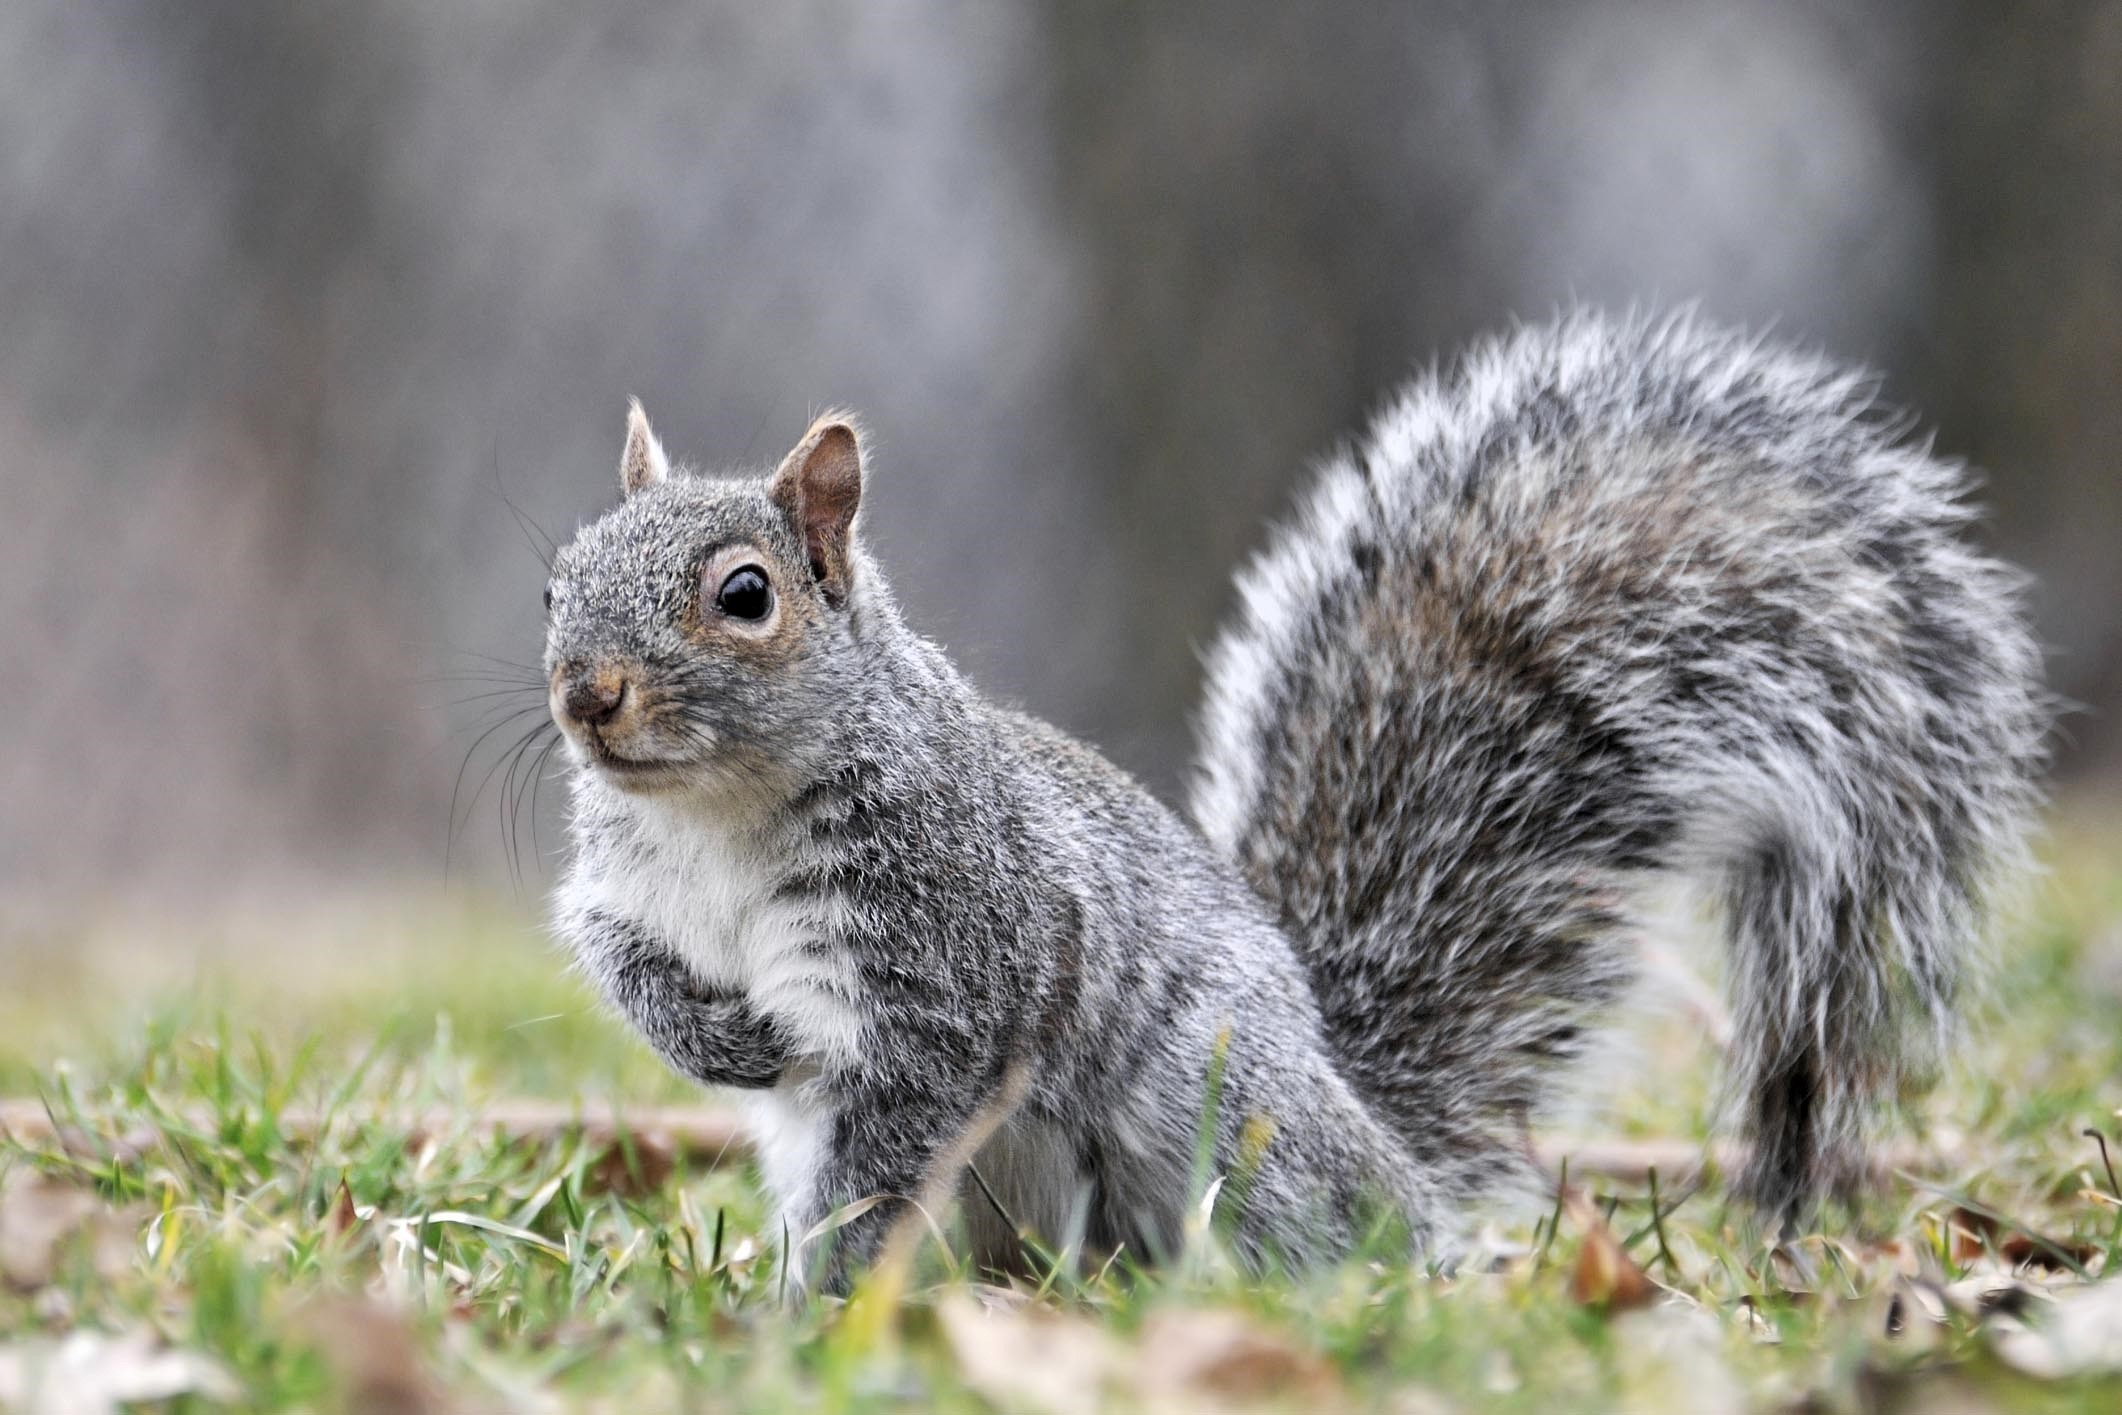 Dorset Wildlife Trust Warns People Not To Feed Squirrels After Man Bitten Bournemouth Echo